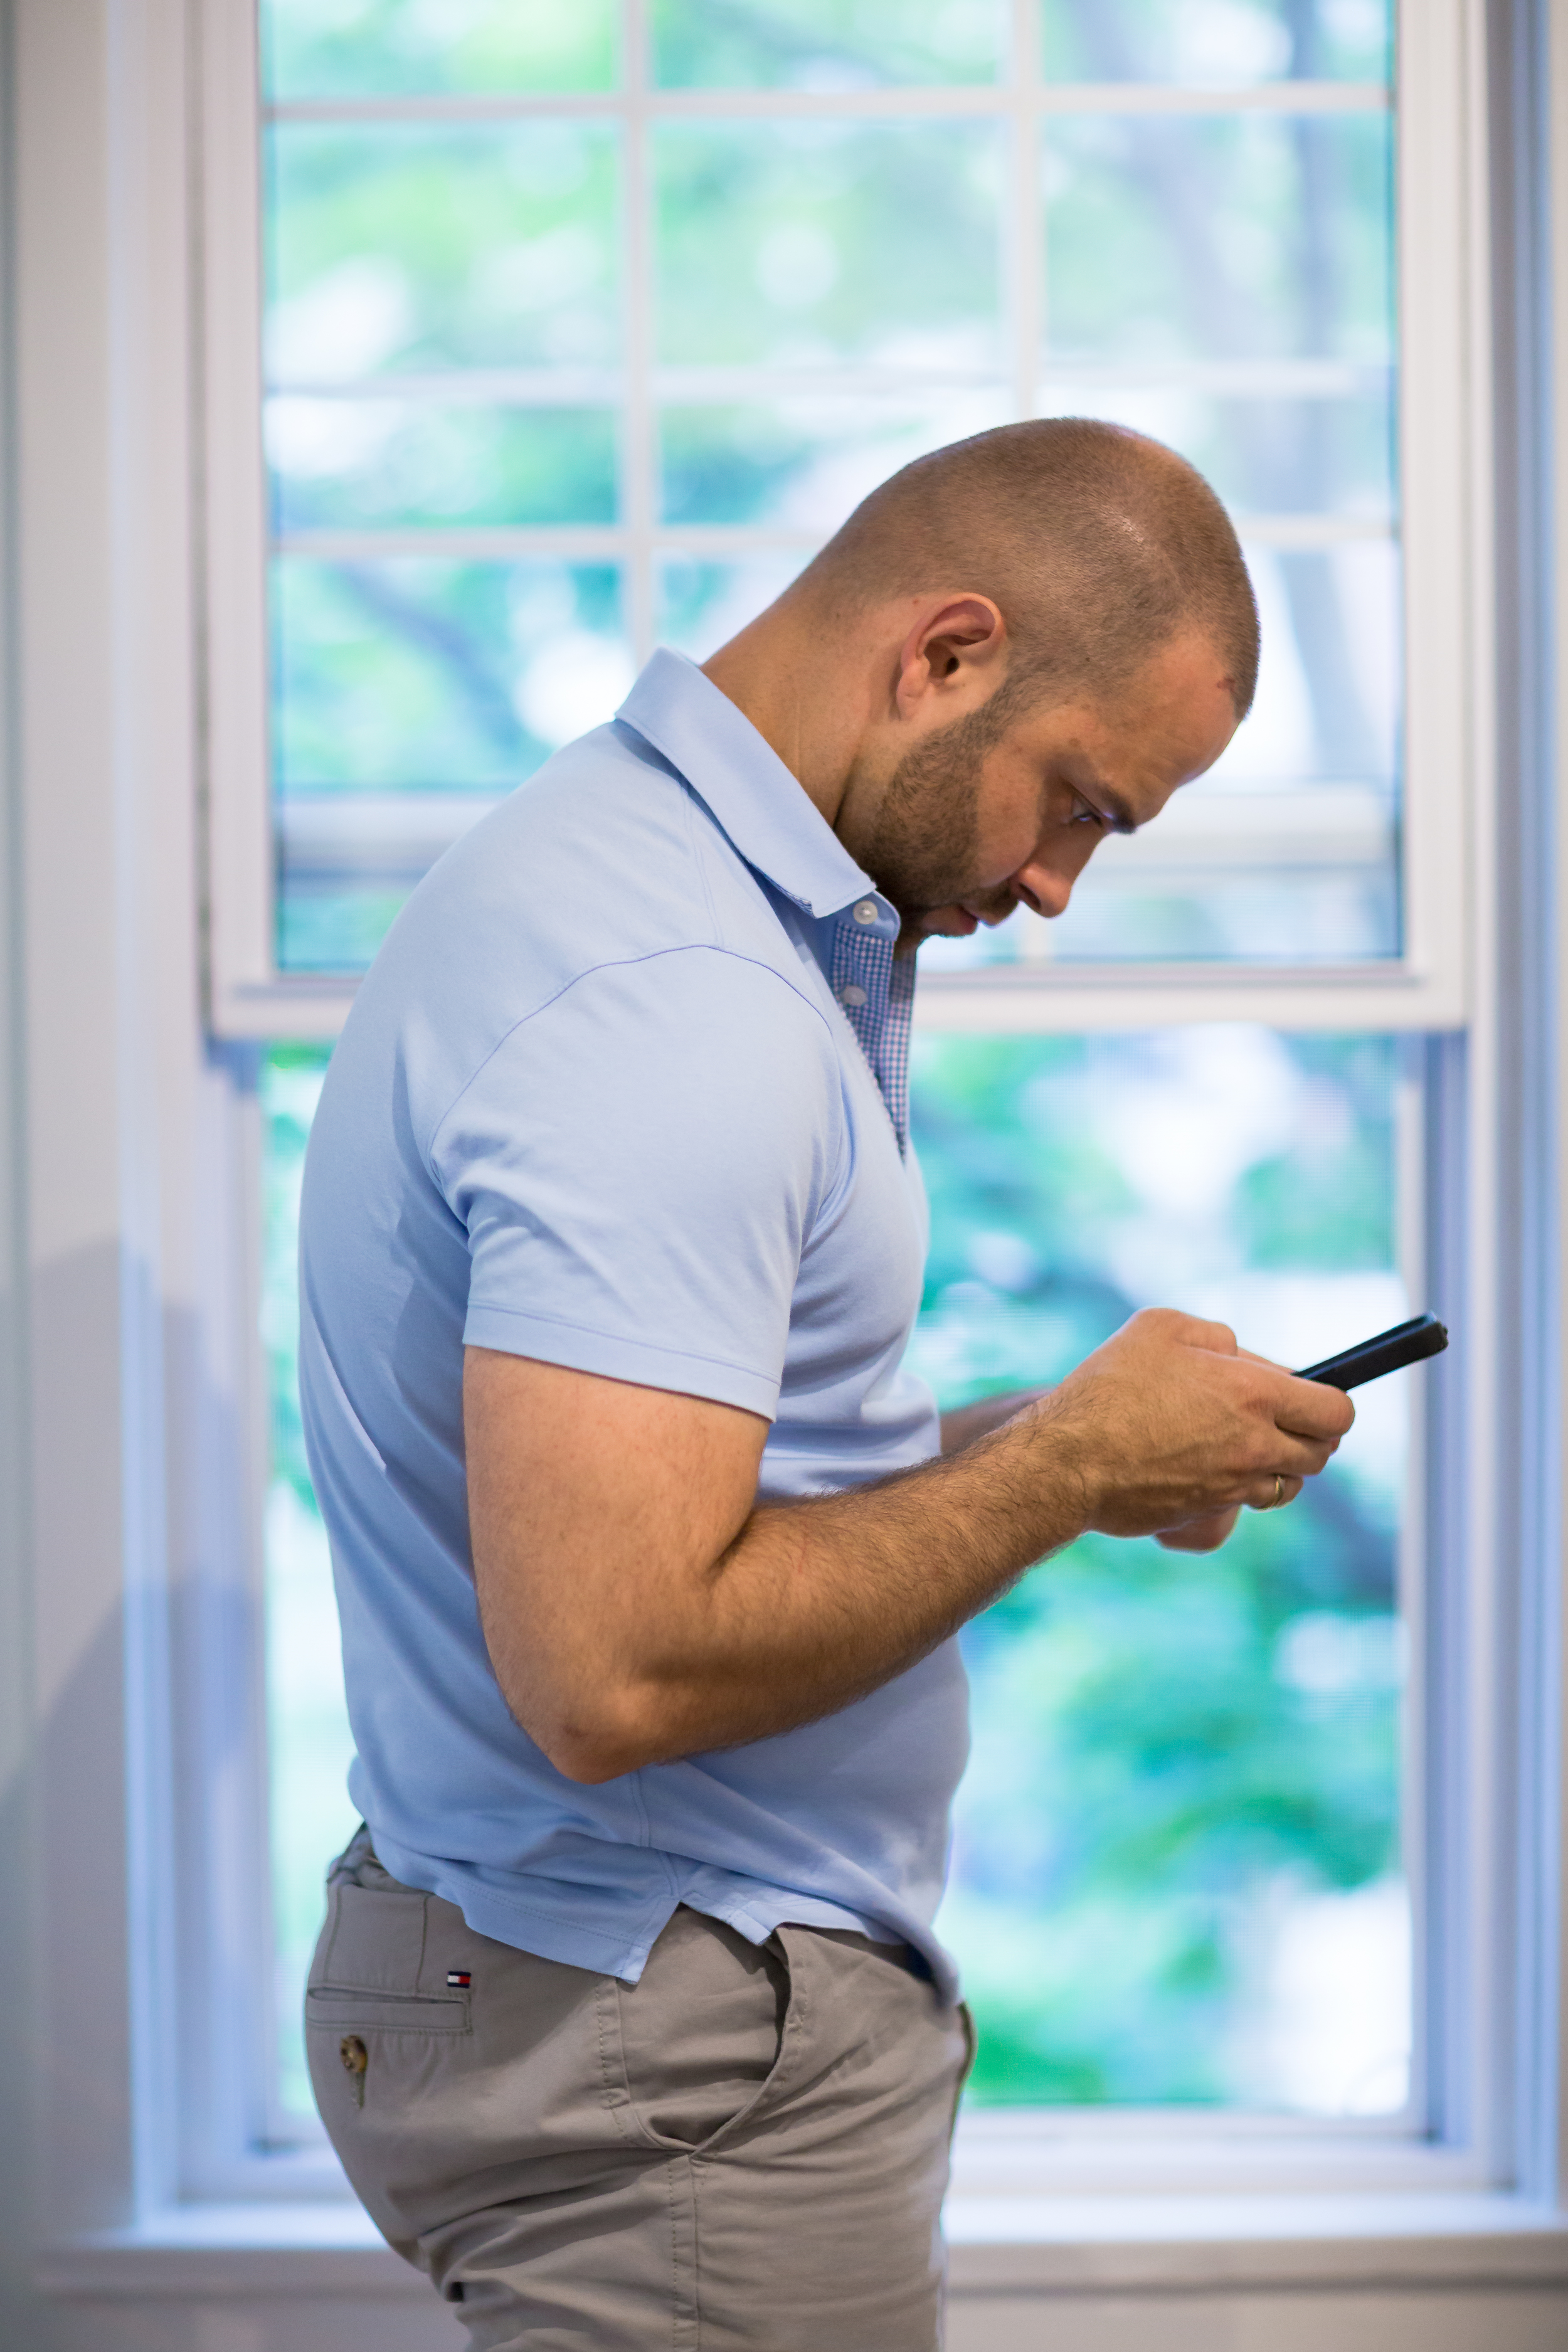 DON'T:  Using your mobile phone while standing, the same applies as when at your desk. It will place strain on your neck, shoulder, lower back, abdomen and eyes. All of which I don't think you want.